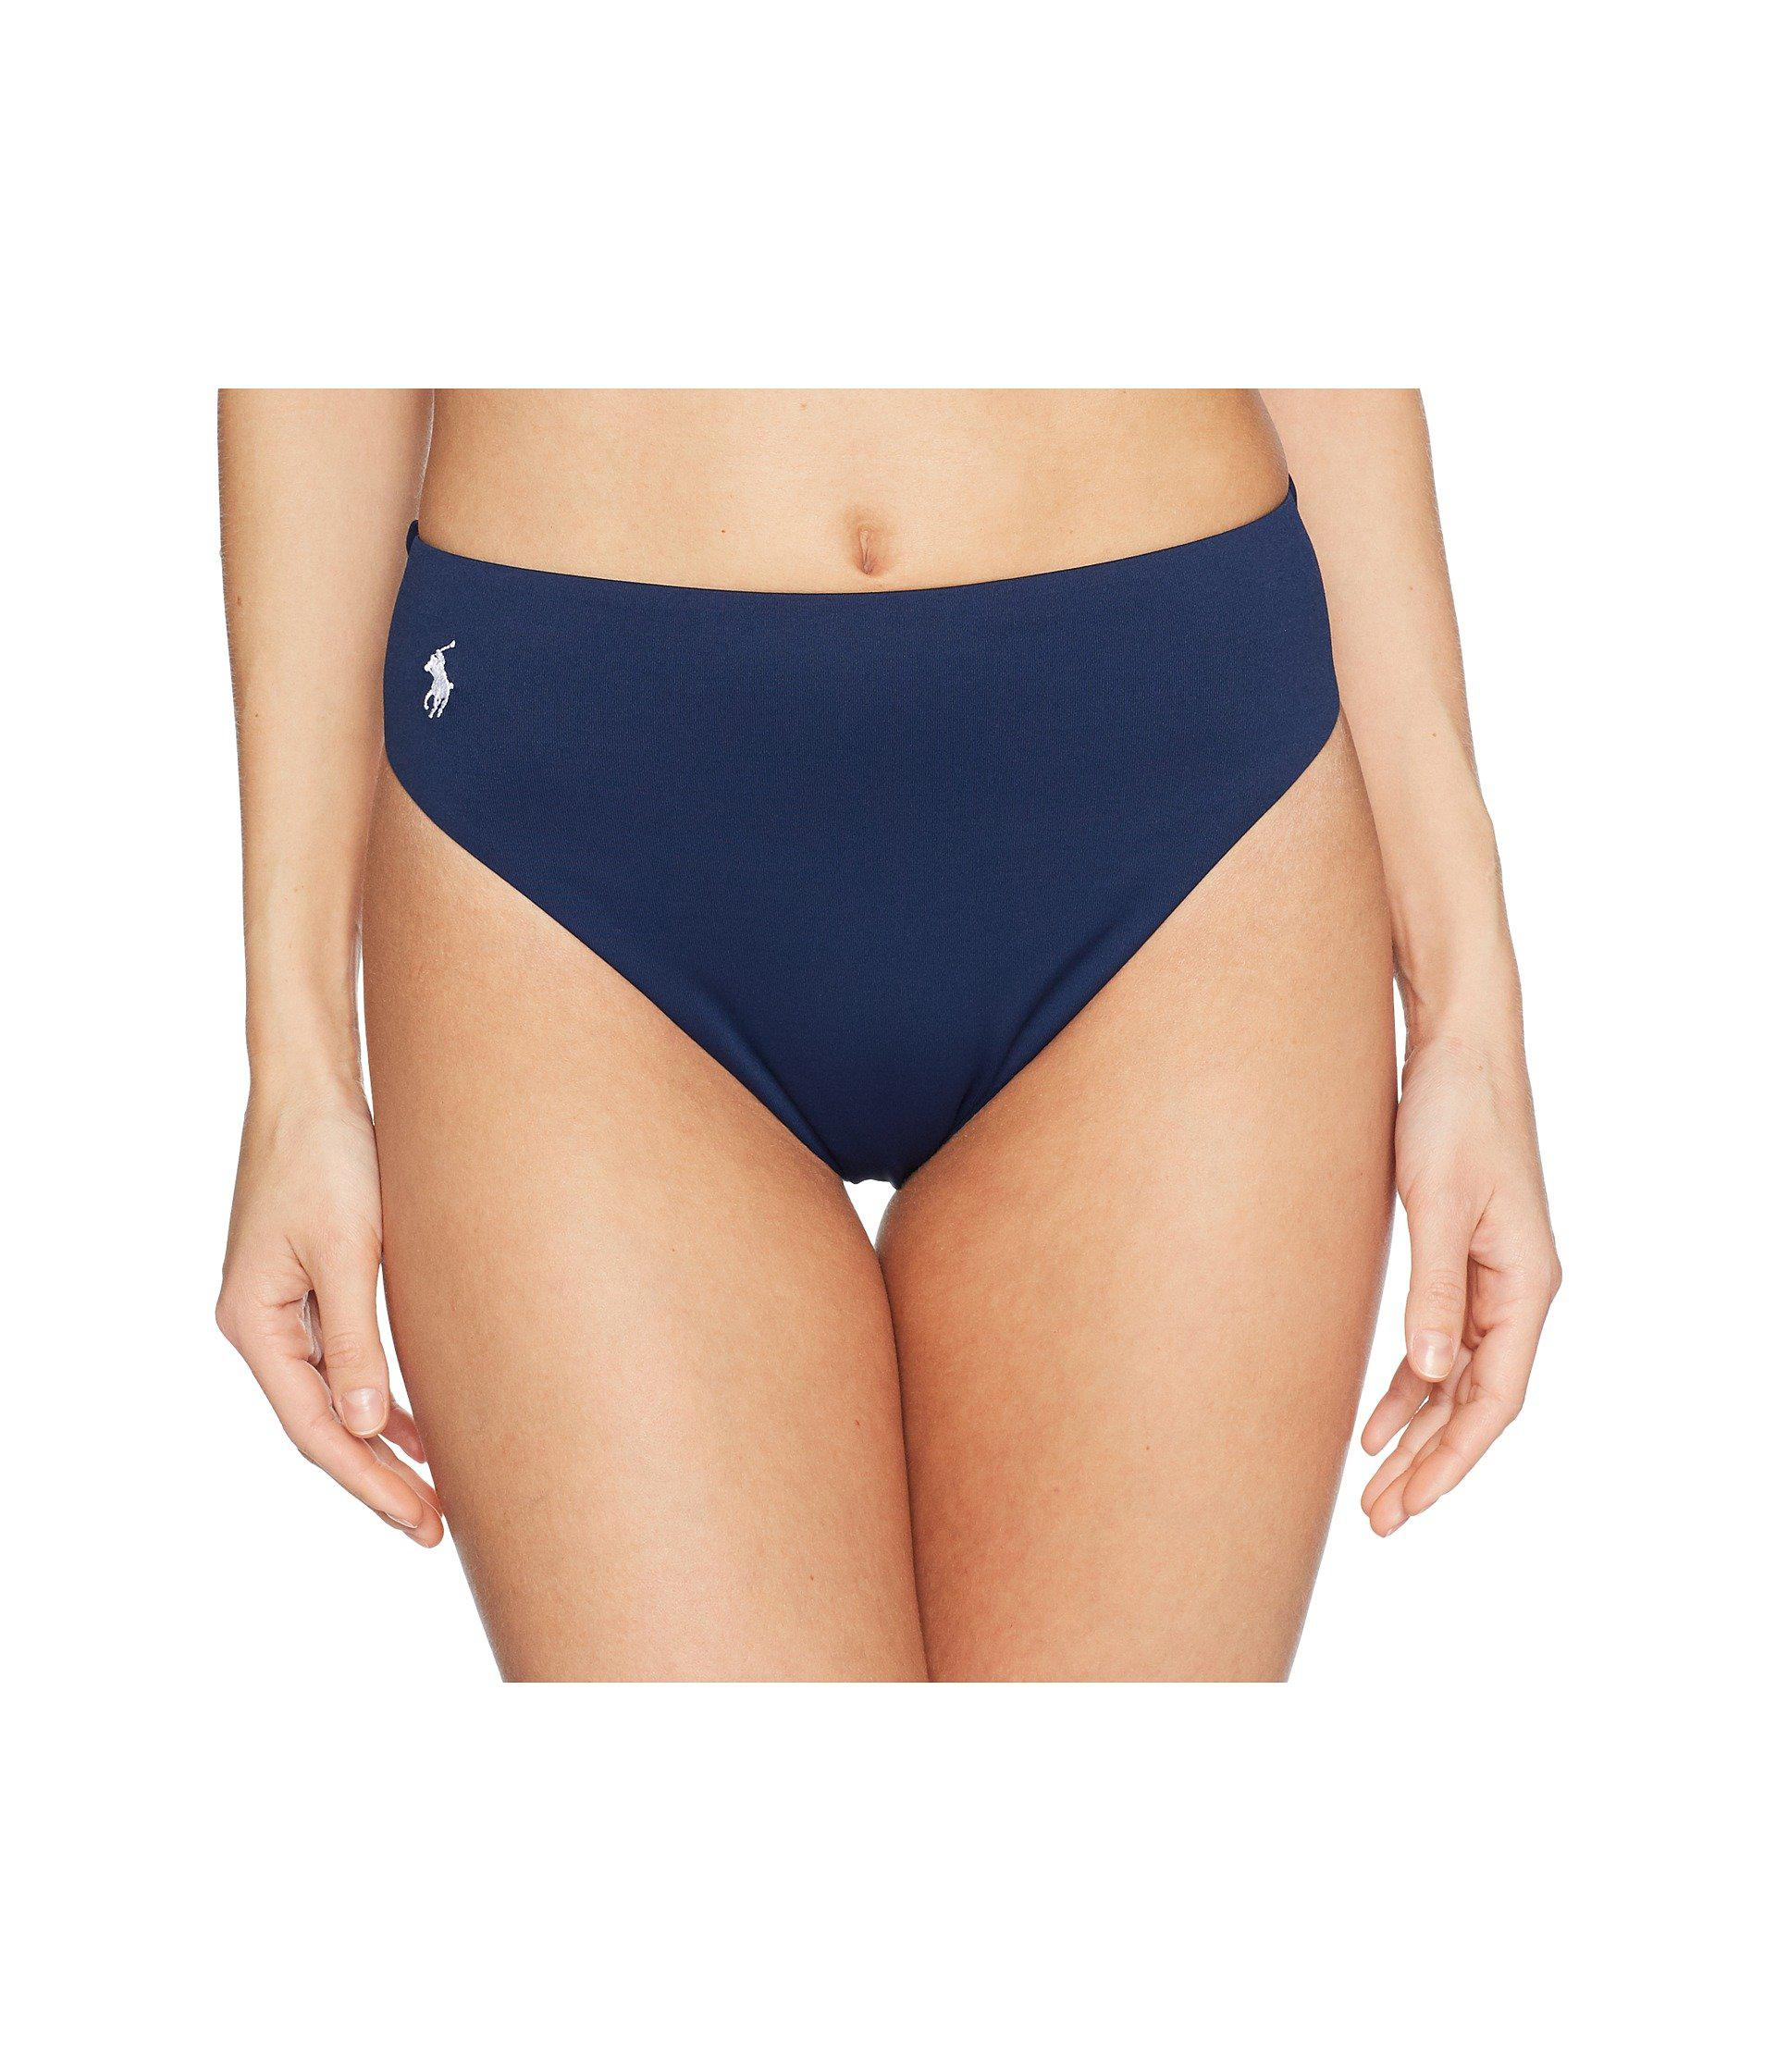 18f7b2004e0 Gallery. Previously sold at: Zappos · Women's High Waisted Bikini Bottoms